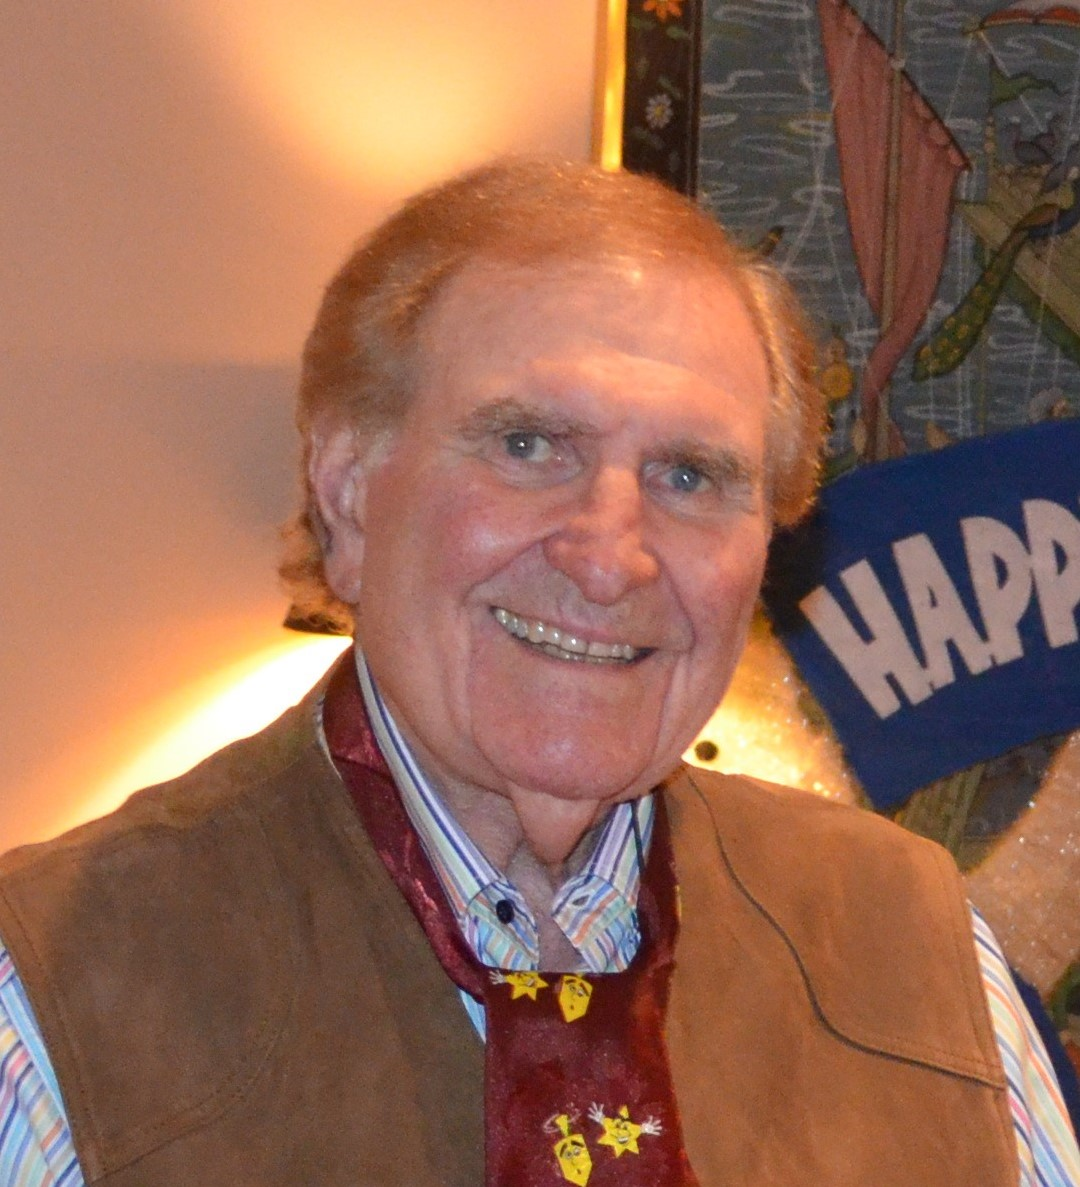 Dr. Max Marvin Behr, 90